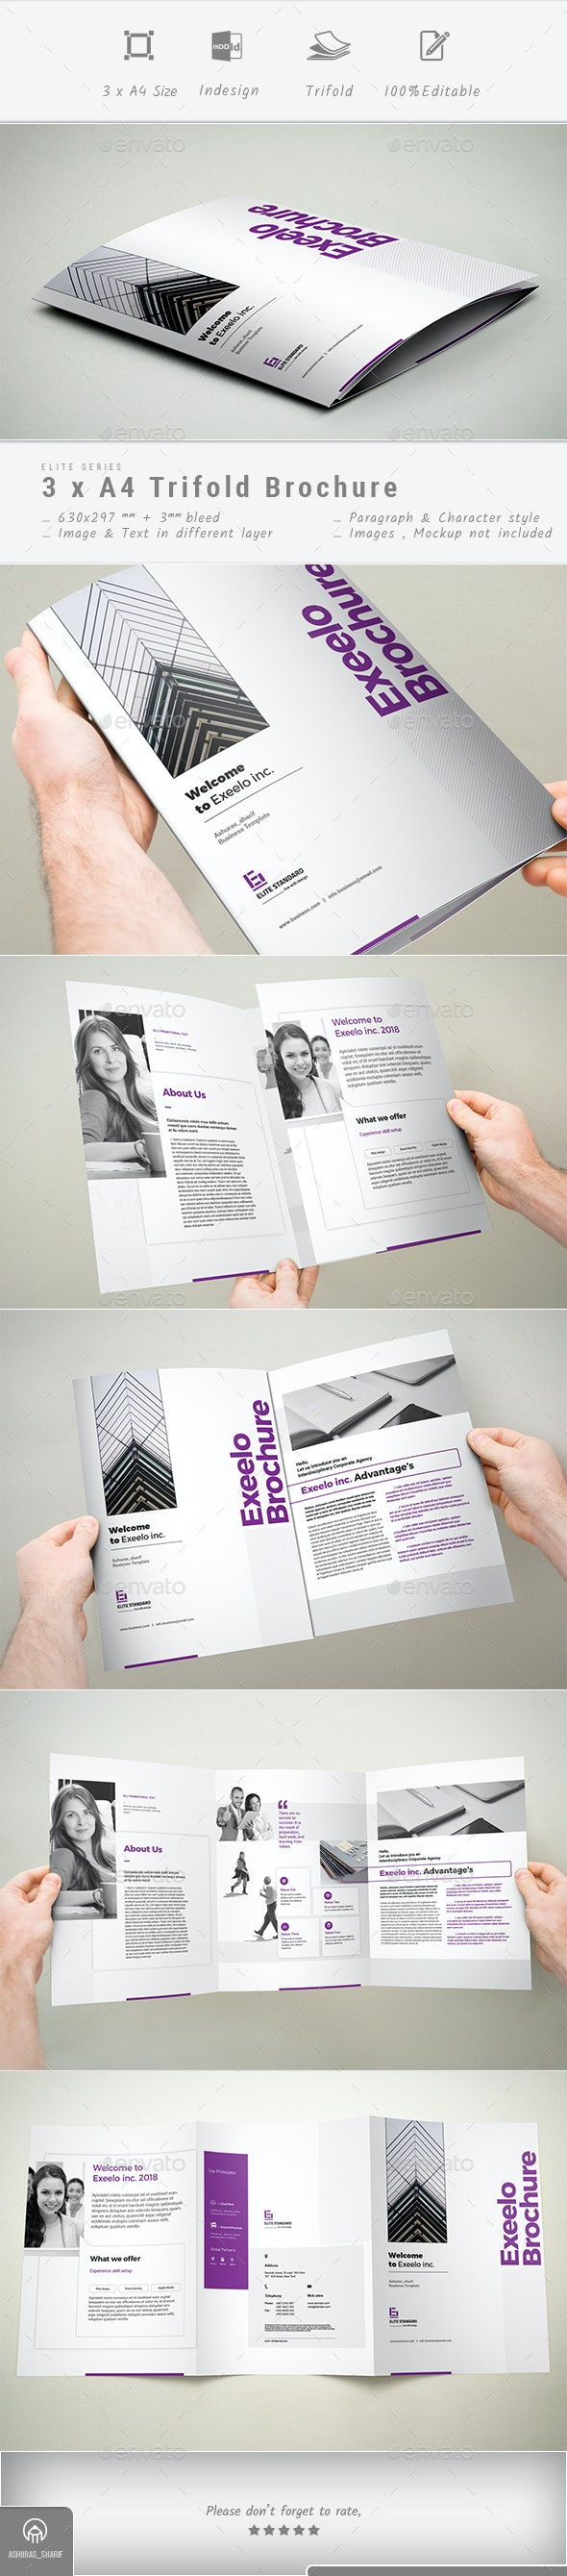 3xA4 Trifold Brochure - Corporate Brochures